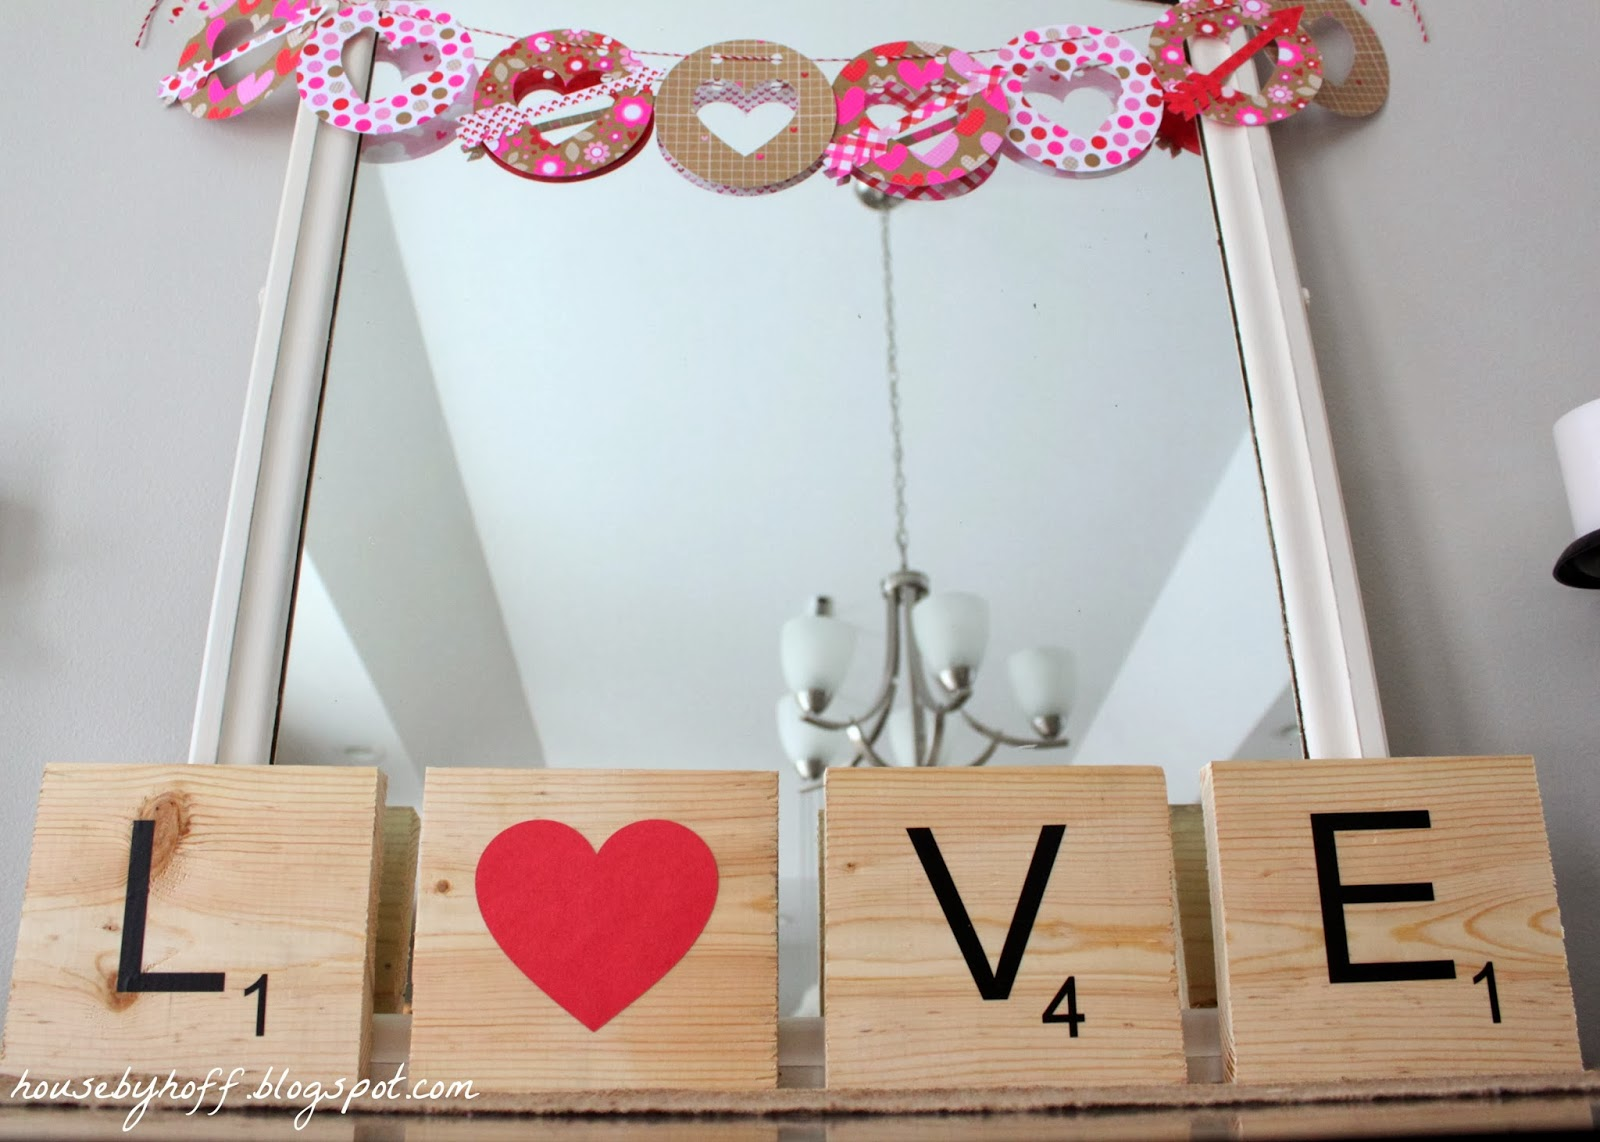 A scrabble love sign displayed in front f a mirror.